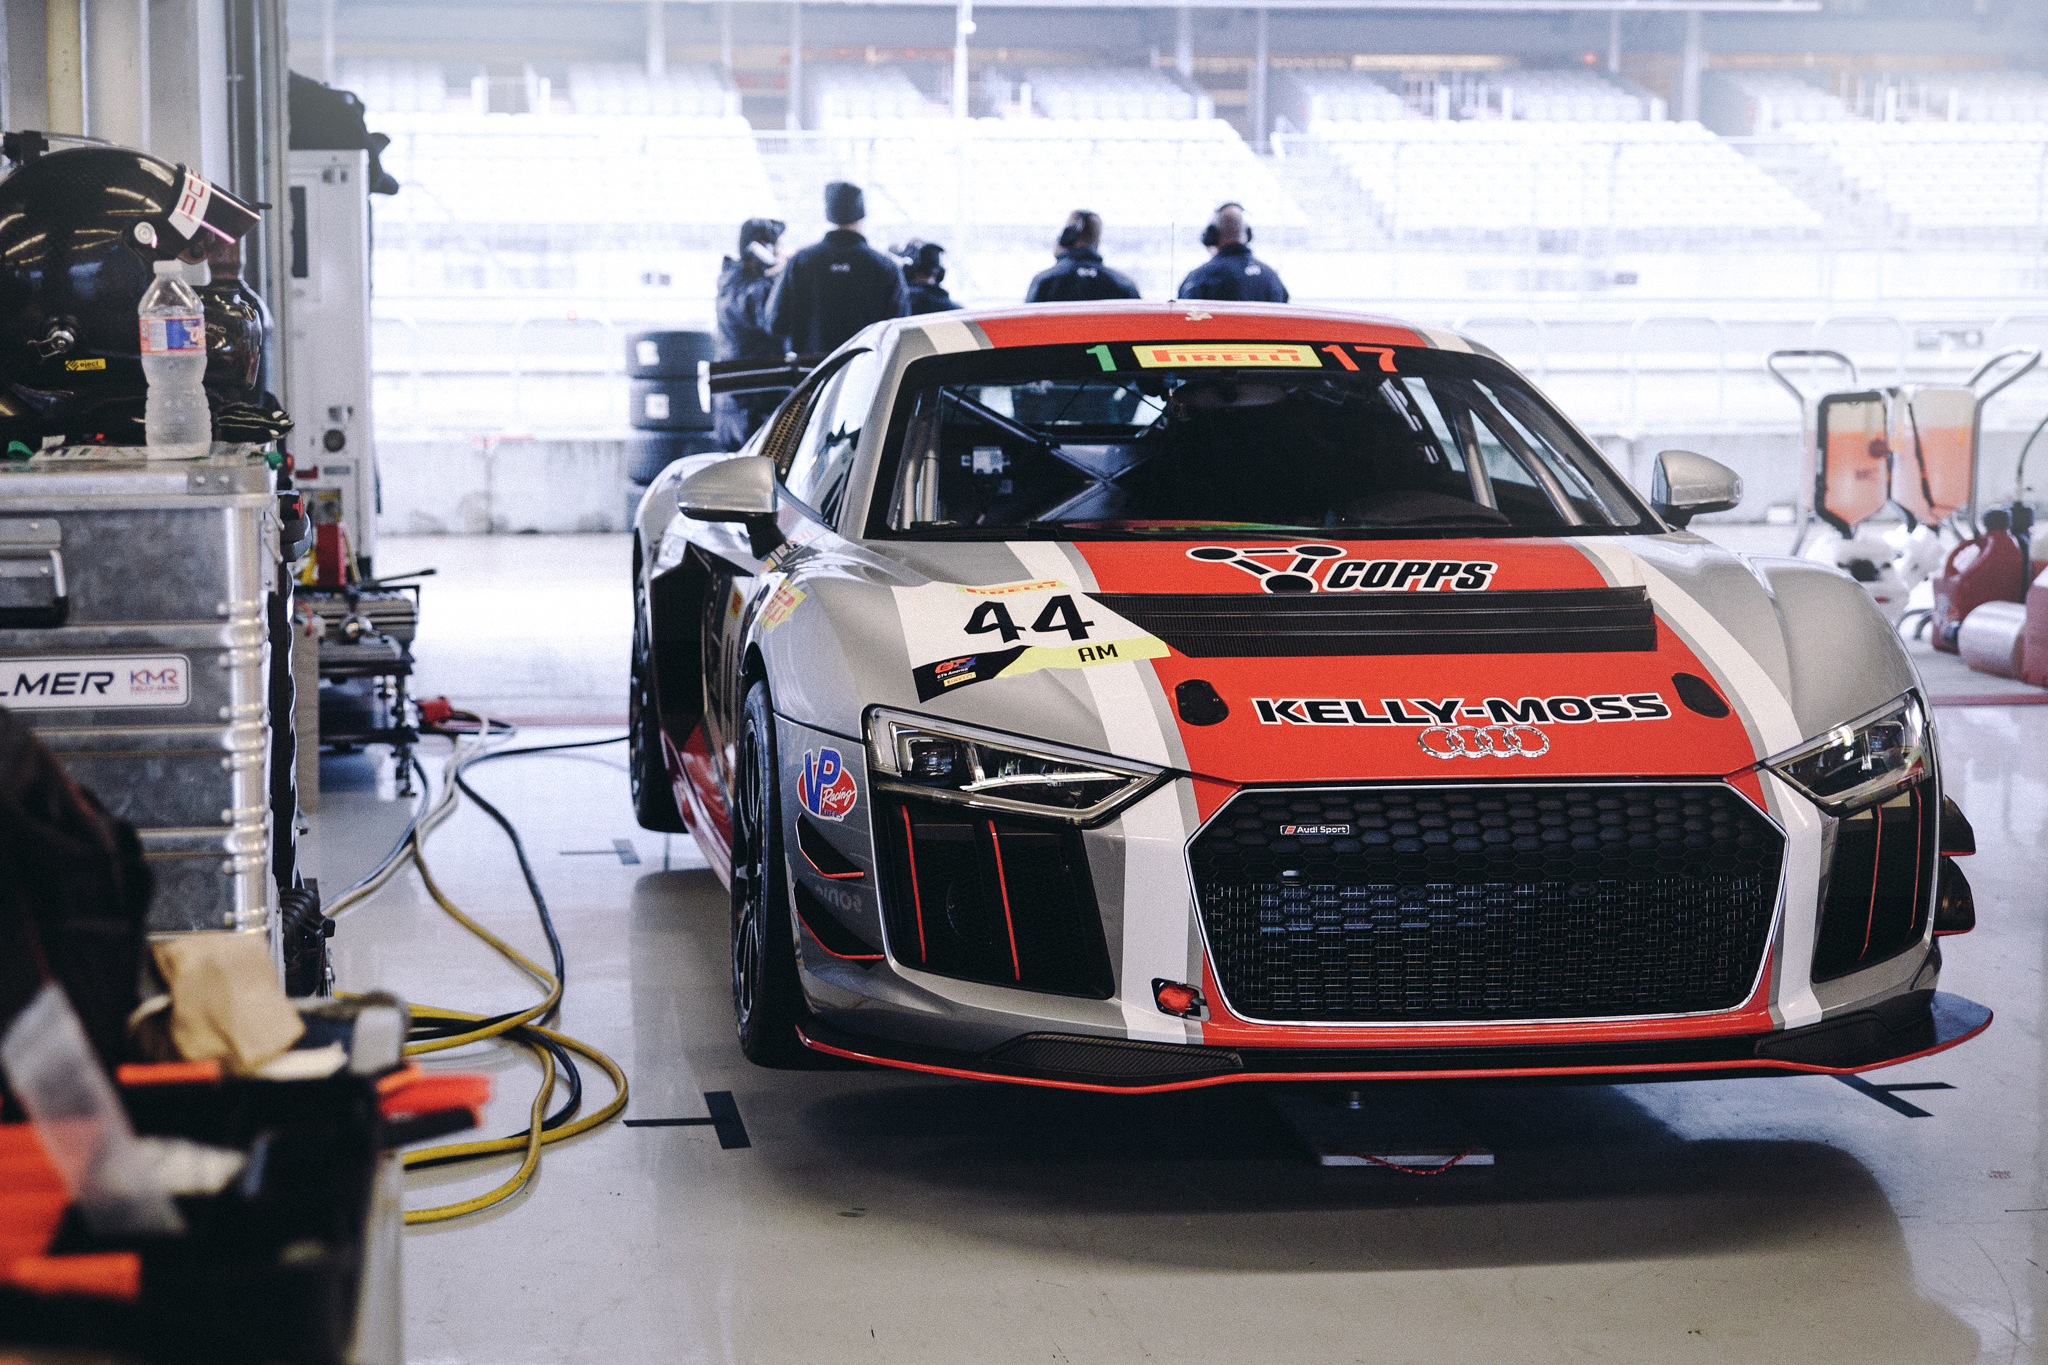 Kelly-Moss is known for Porsche GT3 Cup cars, but this year added an Audi.